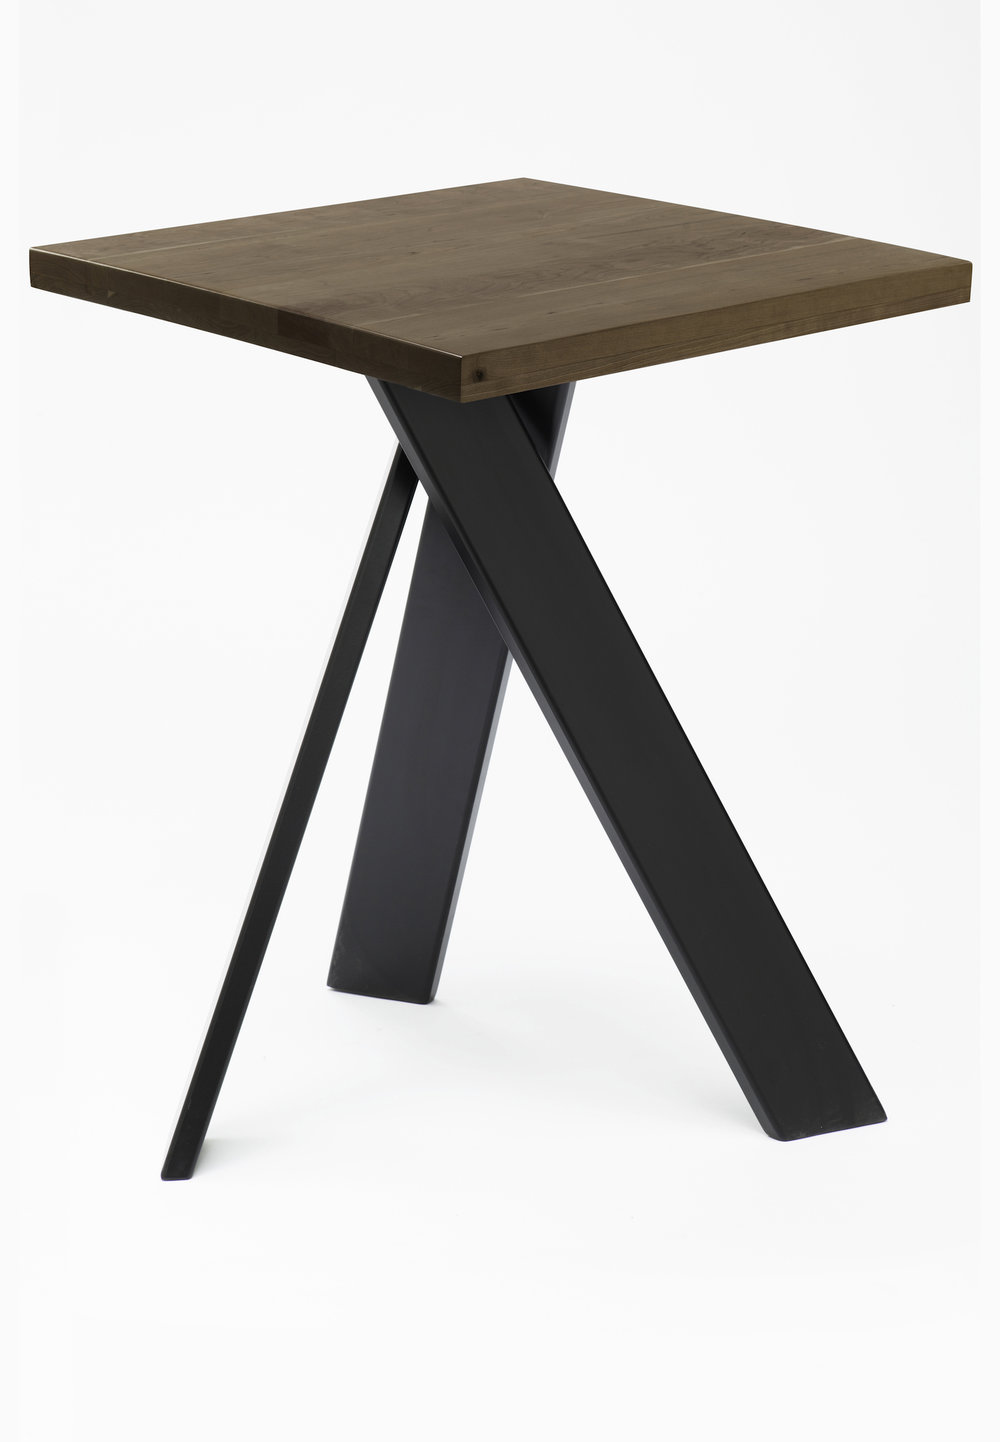 "24"" x 24"" x 30"" Dining/Restaurant Table<br>Solid Cherry with Black Powder Coated Base"